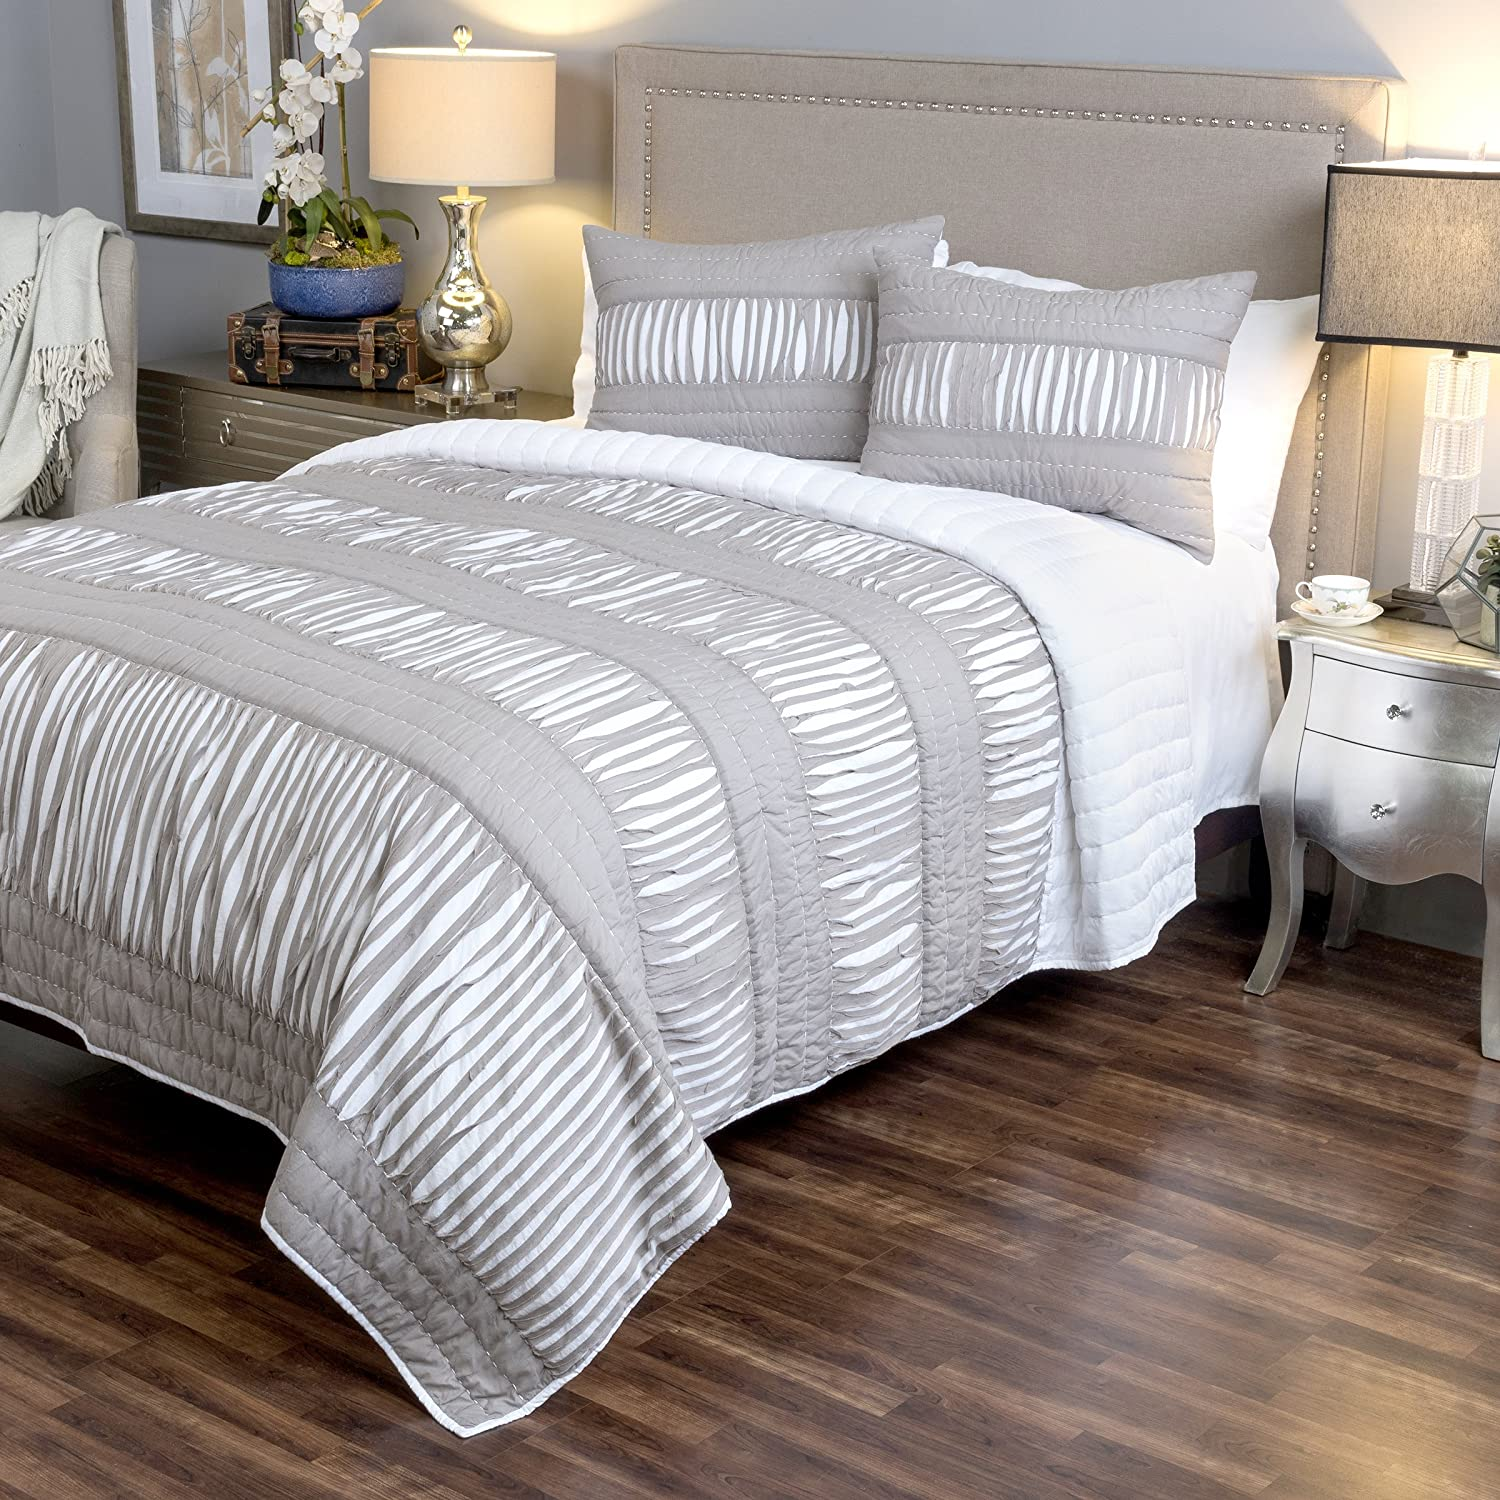 Arden Loft Manhatten Mambo Shredded Chic-Gray 3 Piece King Quilt Set Rizzy Home OVSBT3163GYWH9214